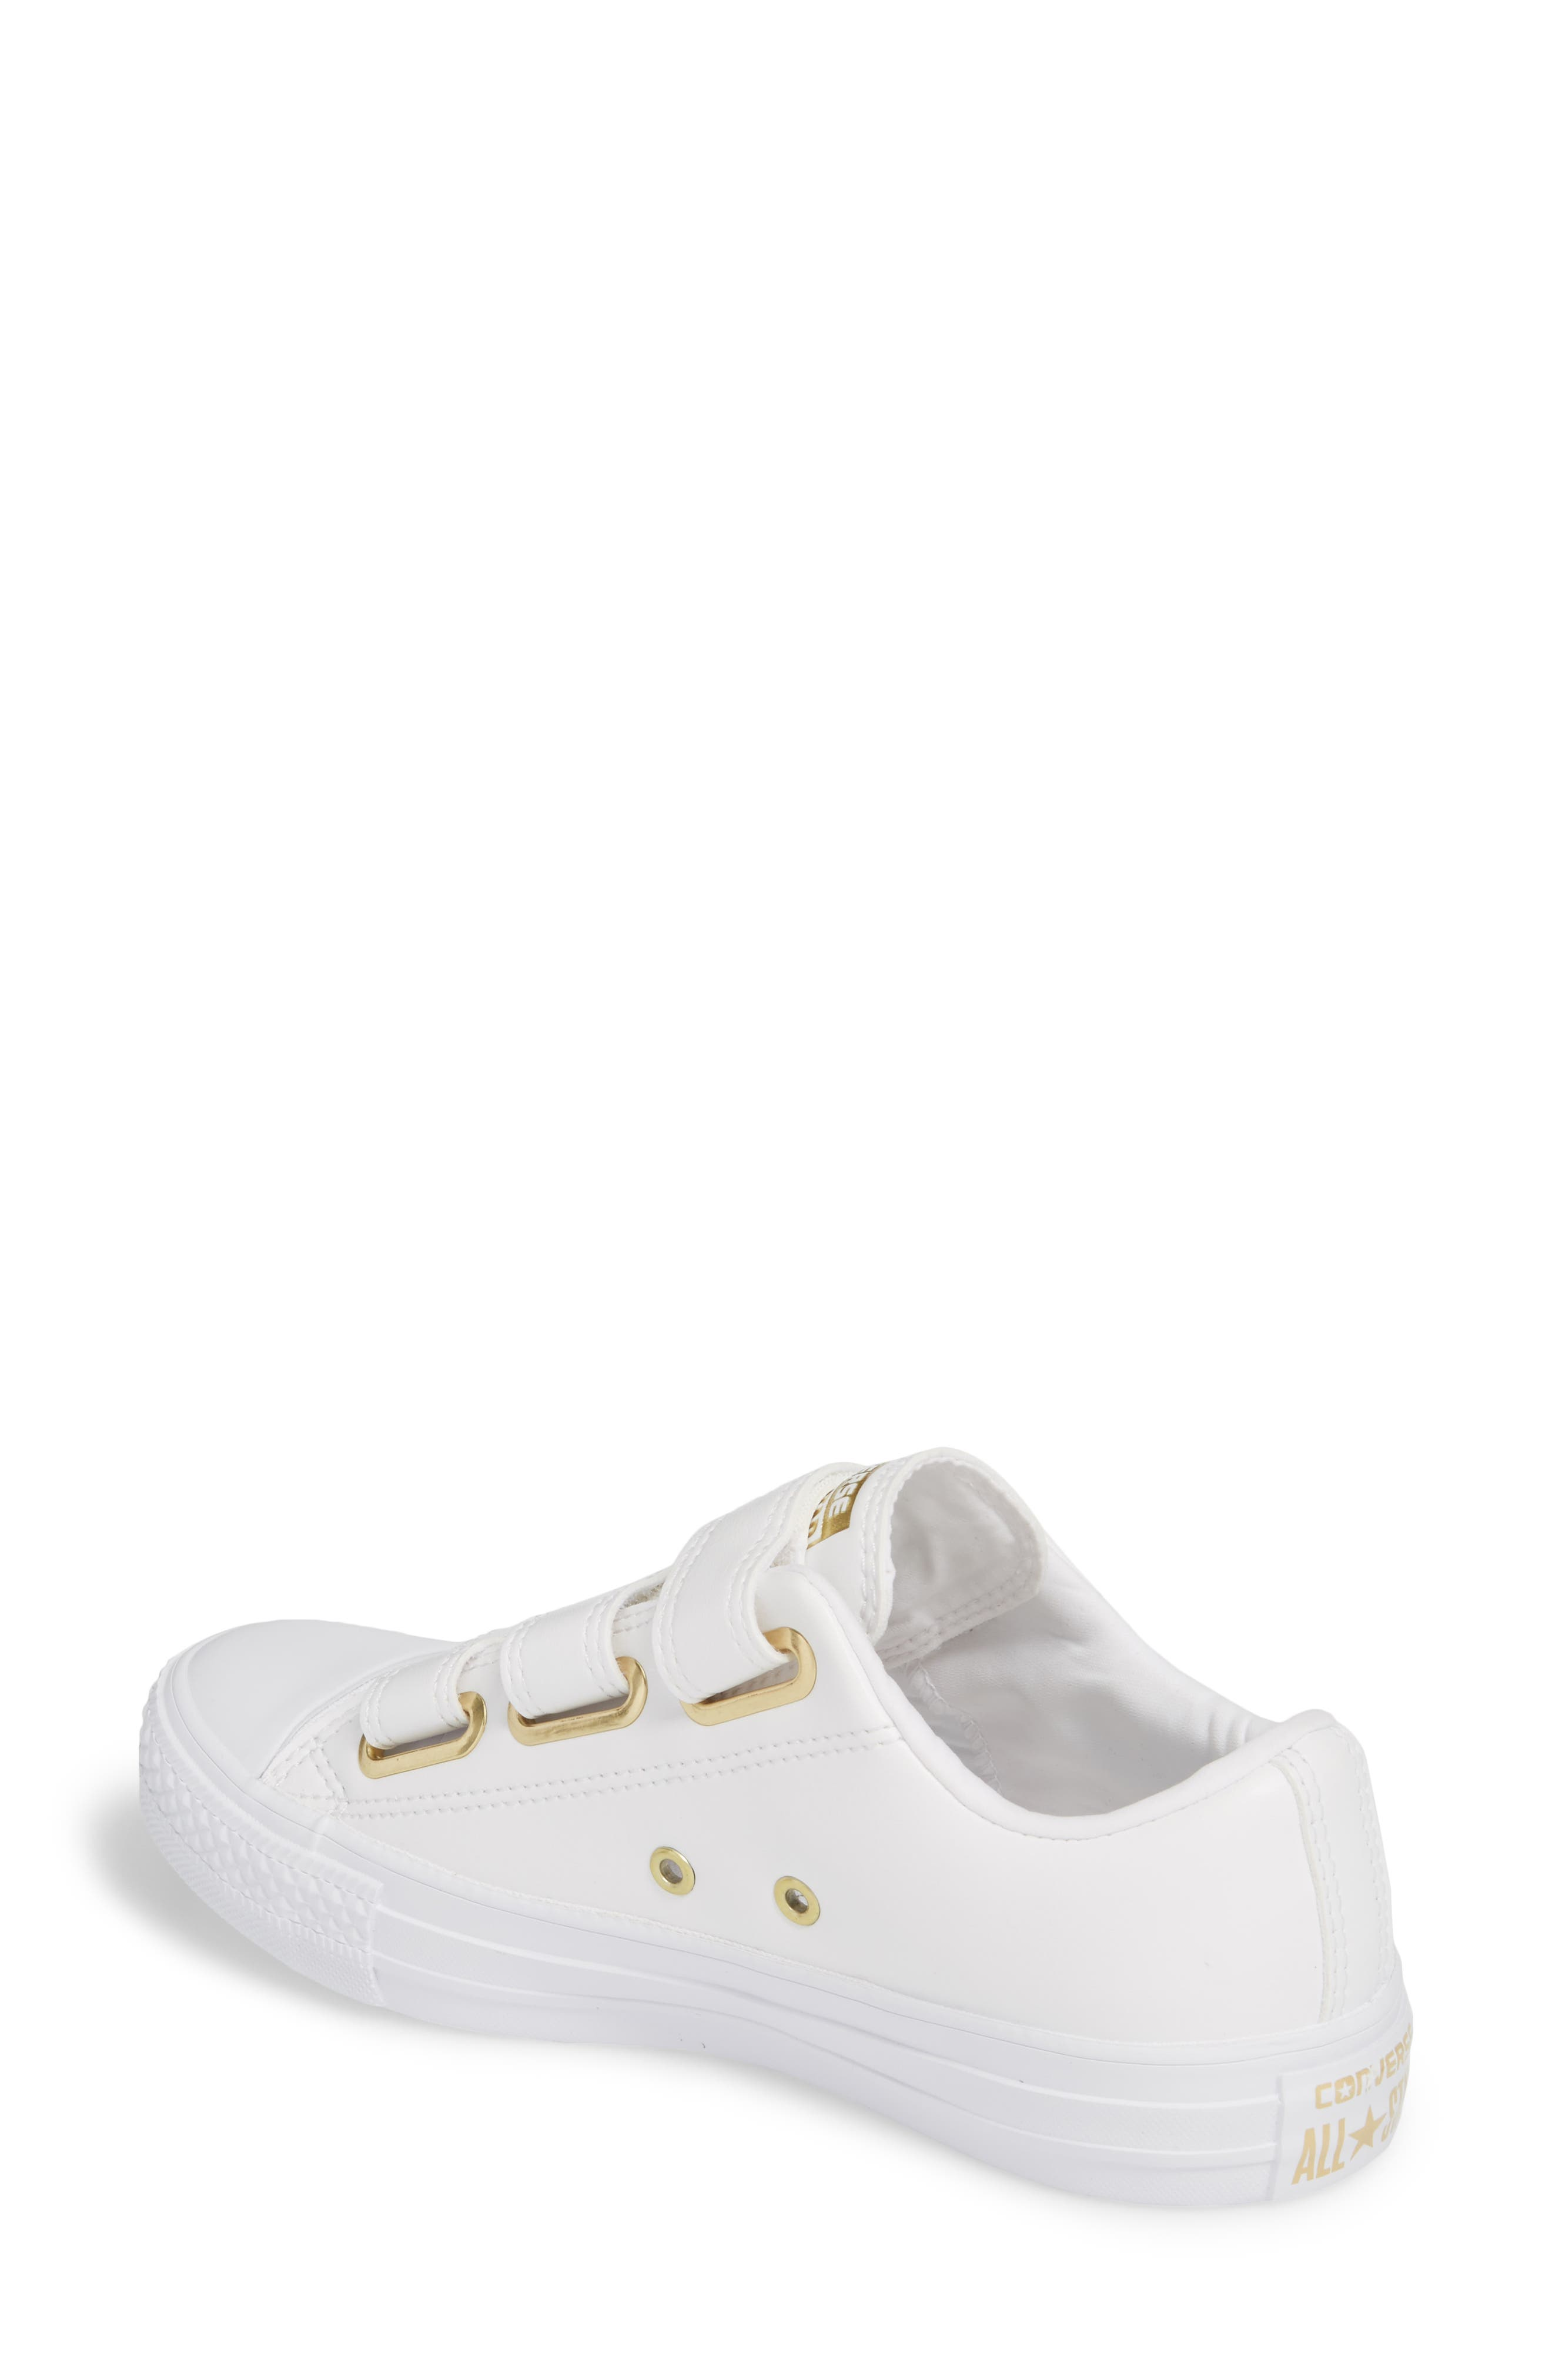 Chuck Taylor<sup>®</sup> All Star<sup>®</sup> 3V Low Top Sneaker,                             Alternate thumbnail 4, color,